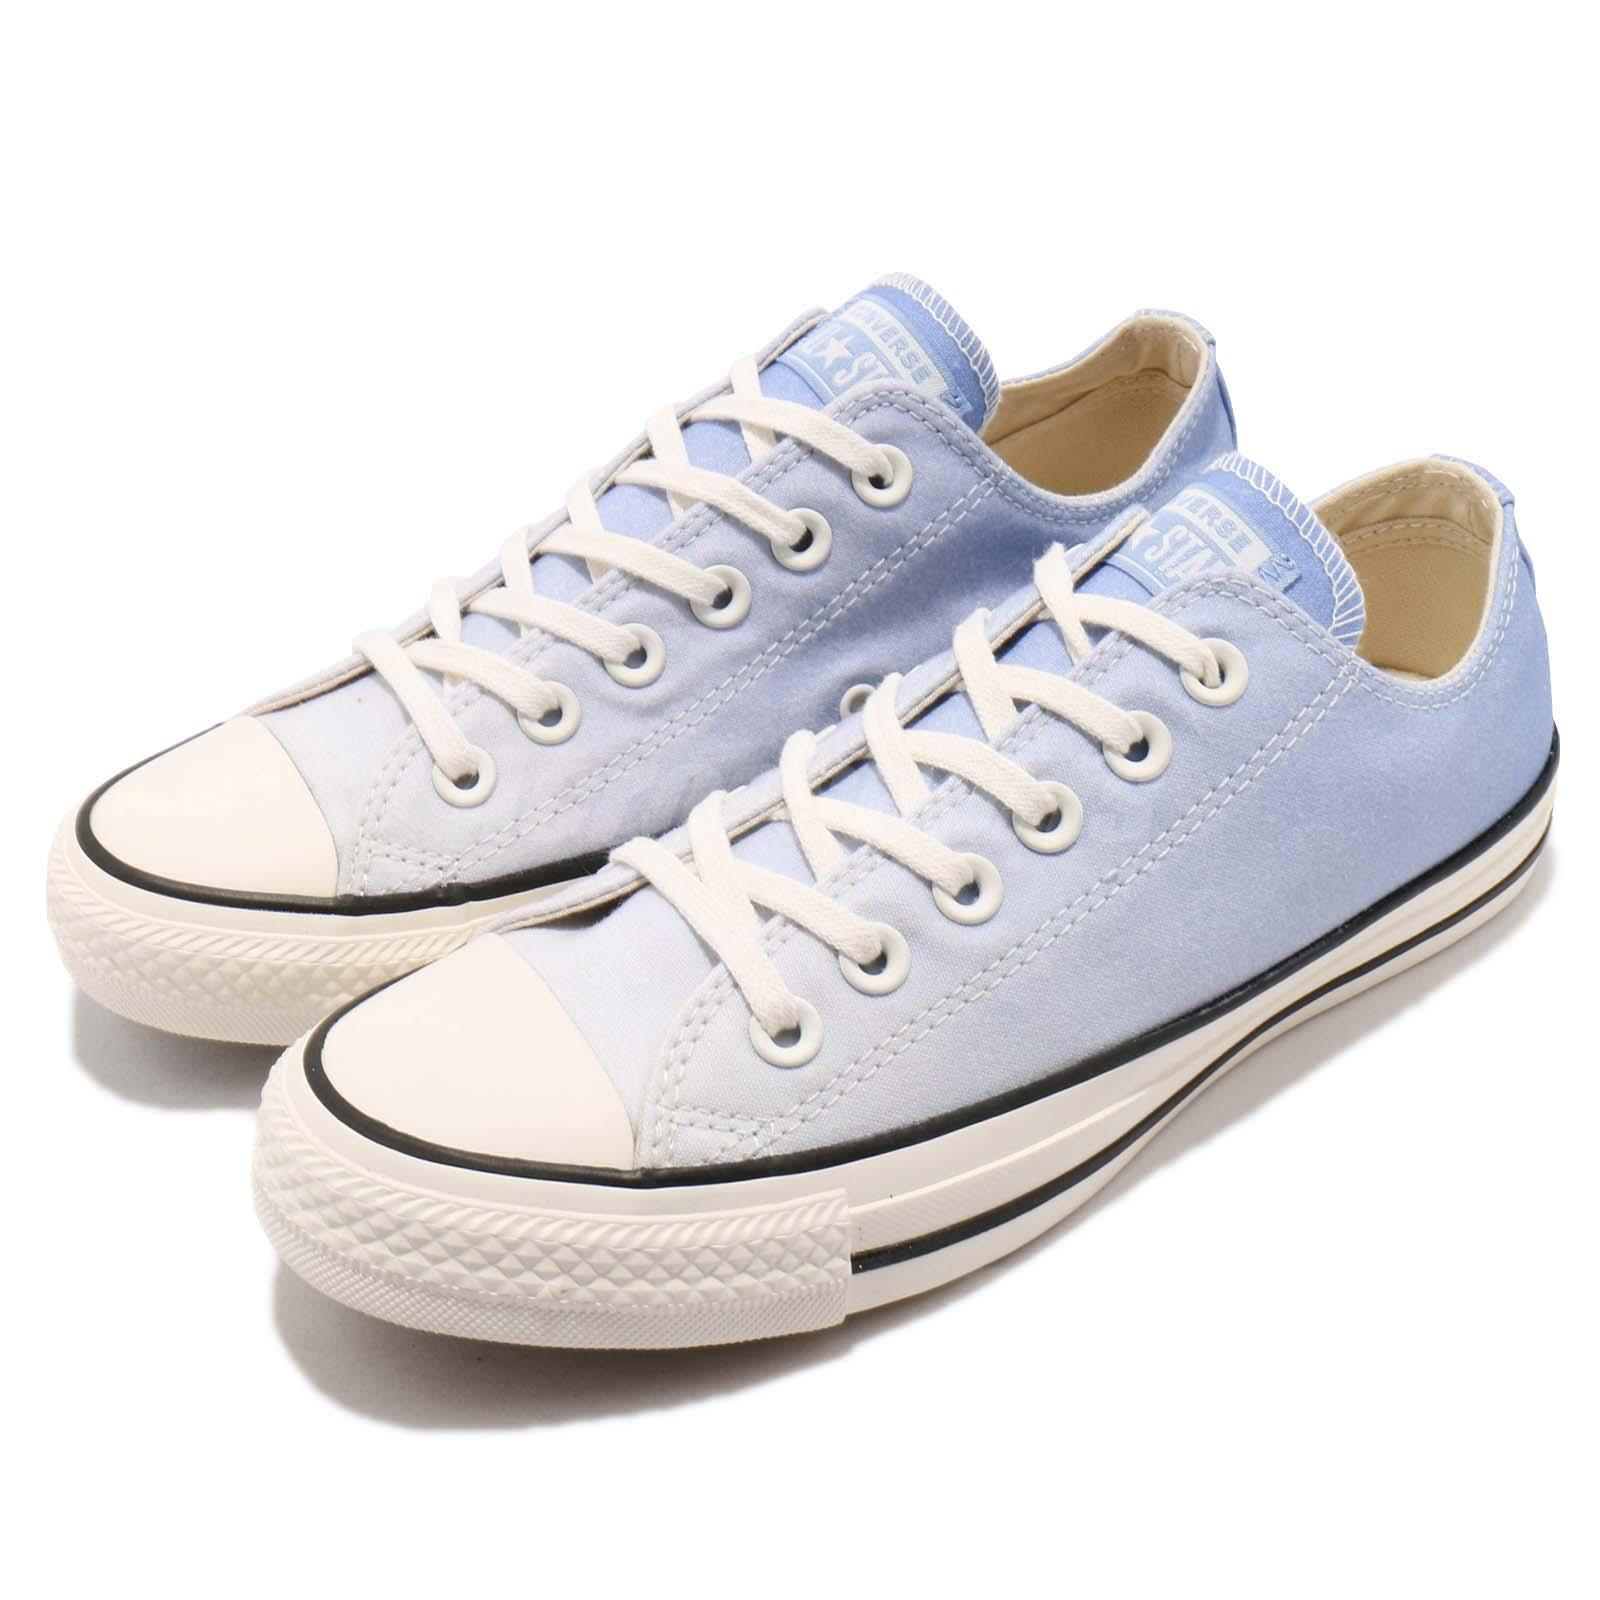 a3763cd45bd7 Details about Converse Chuck Taylor All Star OX White Blue Black Women  Casual Shoes 561725C